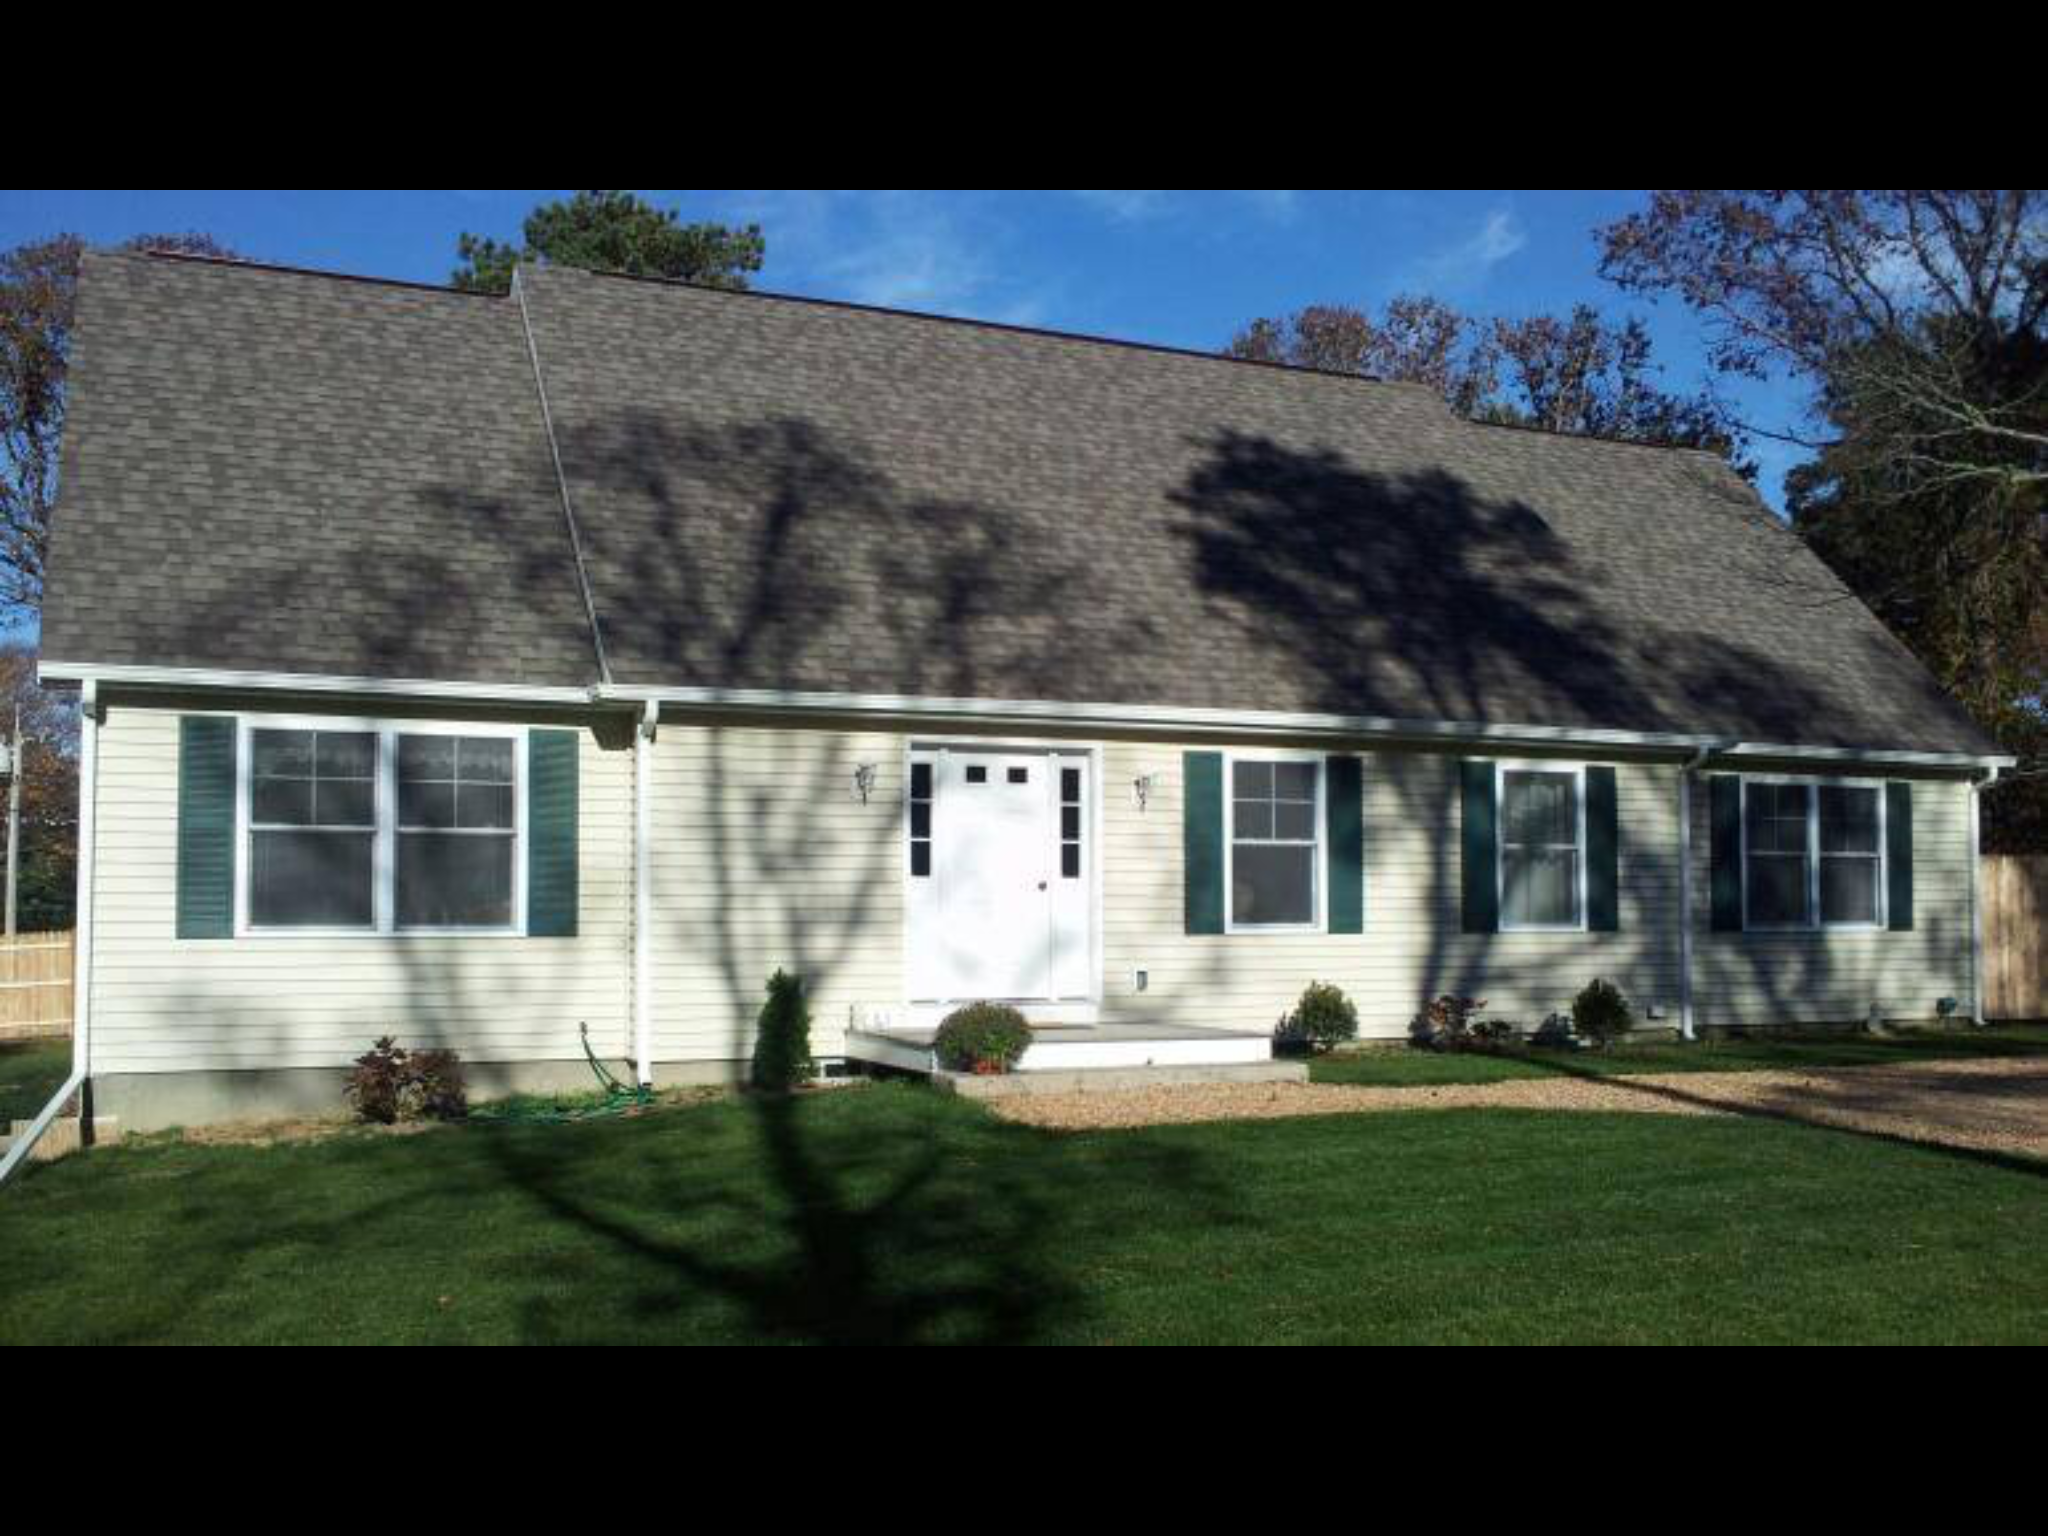 Recently Sold Marthas Vineyard Real Estate Mv Homes Wiring House To Detached Garage Along With Electrical Diagram Oak Bluffs 143 Pennsylvania Avenue For 66700 May 18 By Marilyn Moses Located In The Lagoon Heights Offering 3 Bedrooms 35 Bathrooms